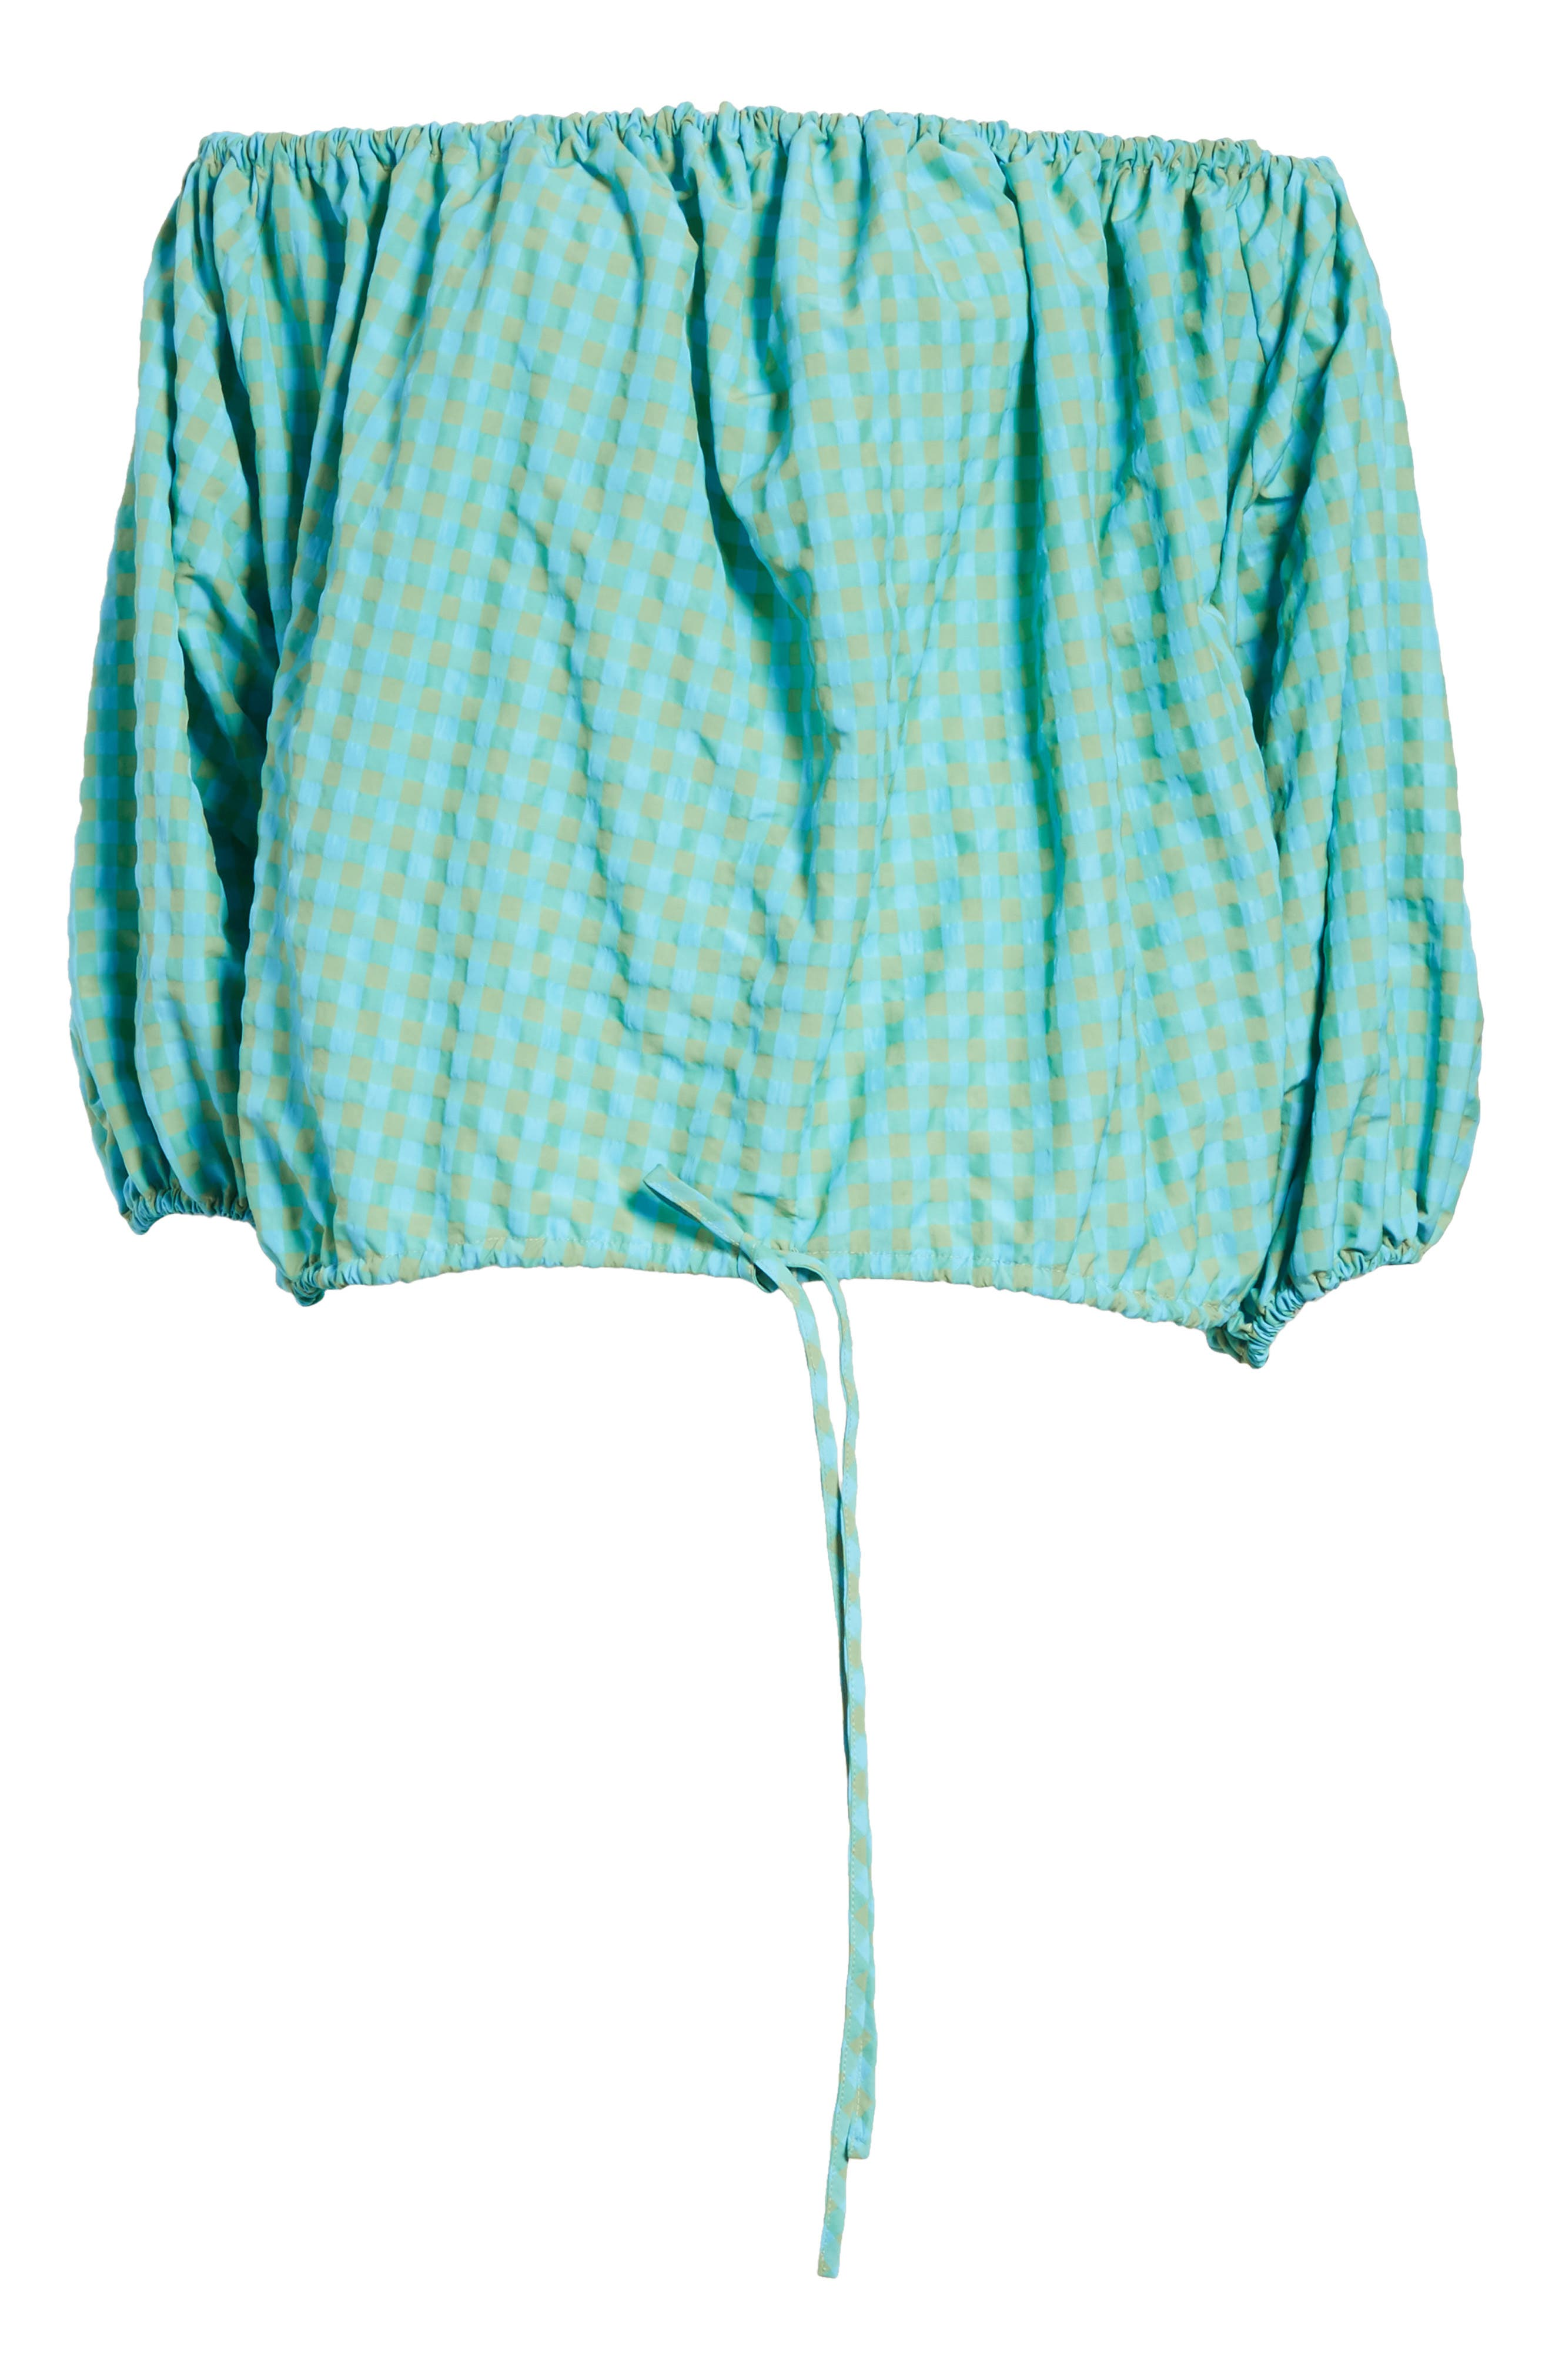 Marques'Almeida Off the Shoulder Gingham Top,                             Alternate thumbnail 6, color,                             Turquoise Gingham